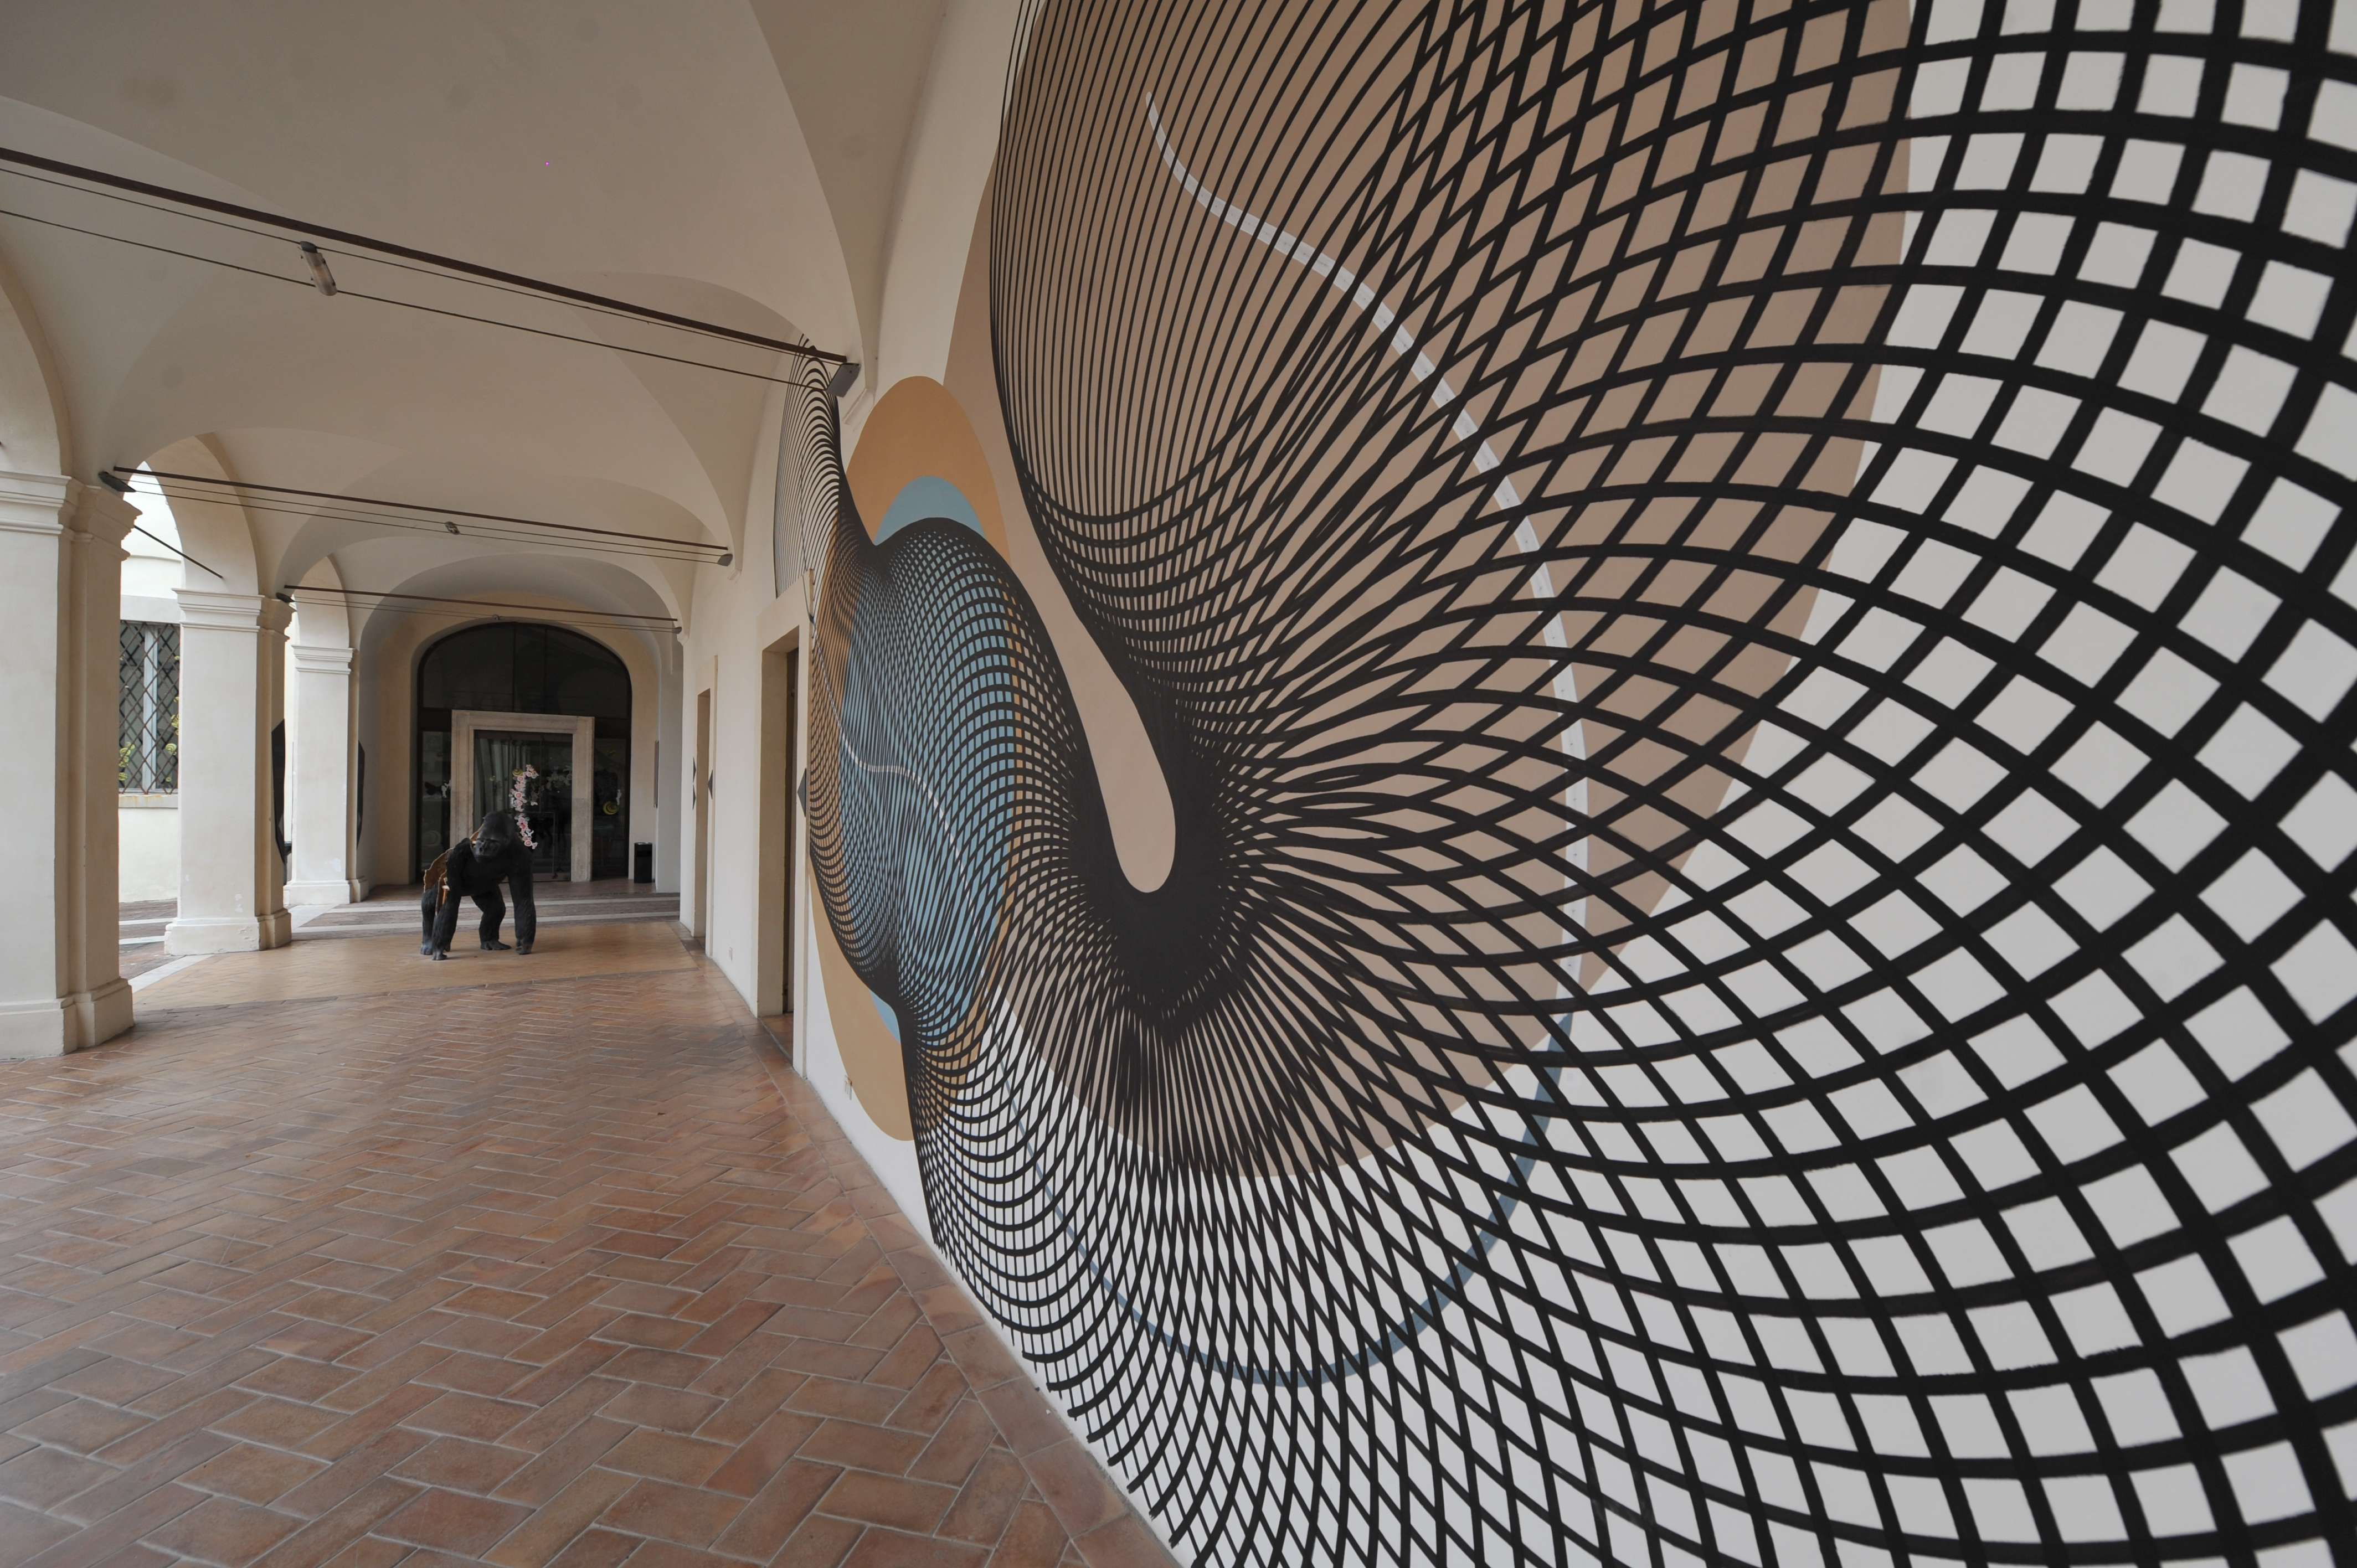 Palazzo Collicola and CAOS: contemporary art in Umbria